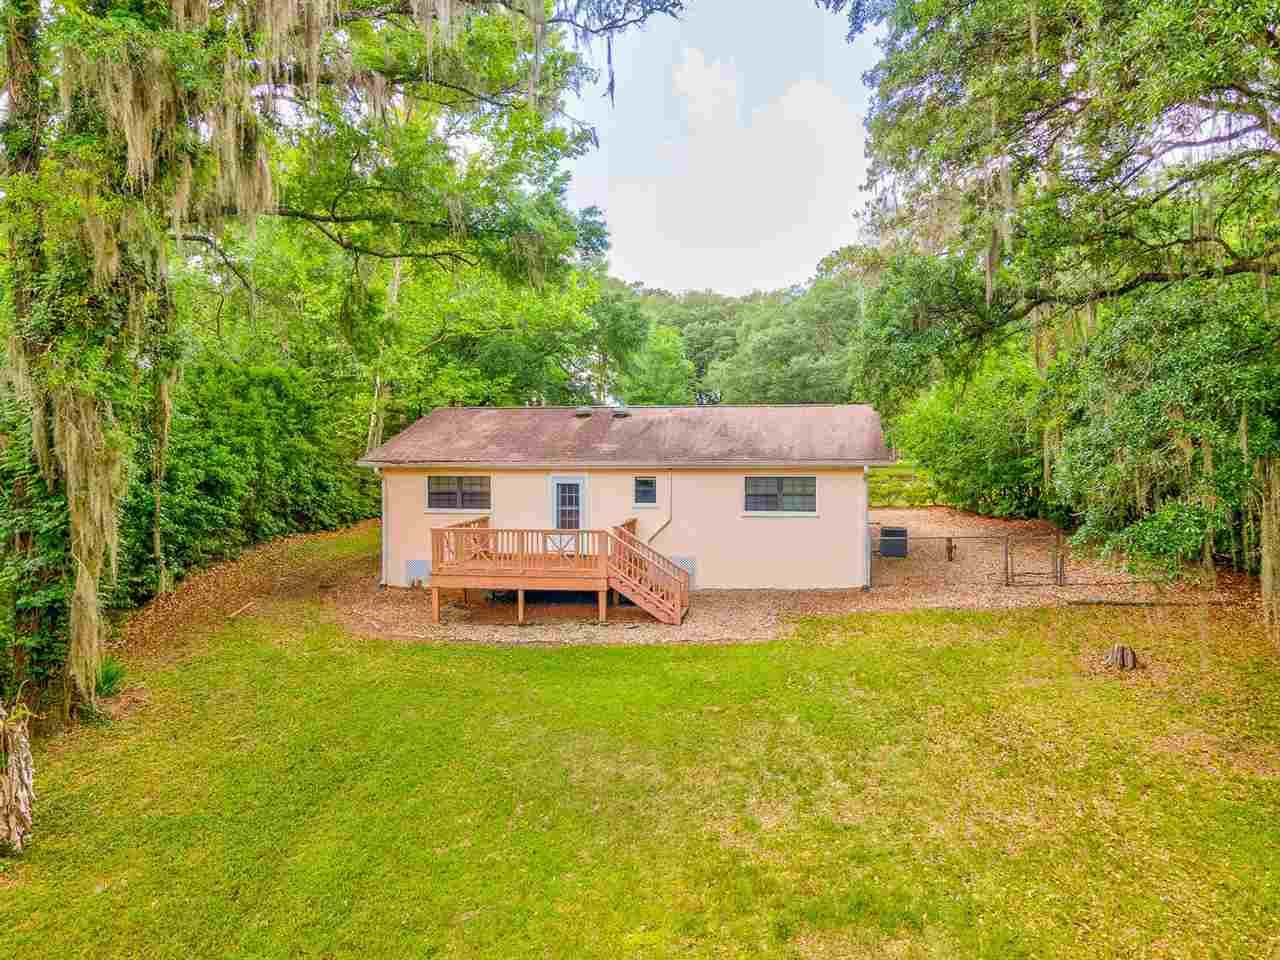 3001 Lakeview Point Road, Quincy, FL 32351 - MLS#: 307568